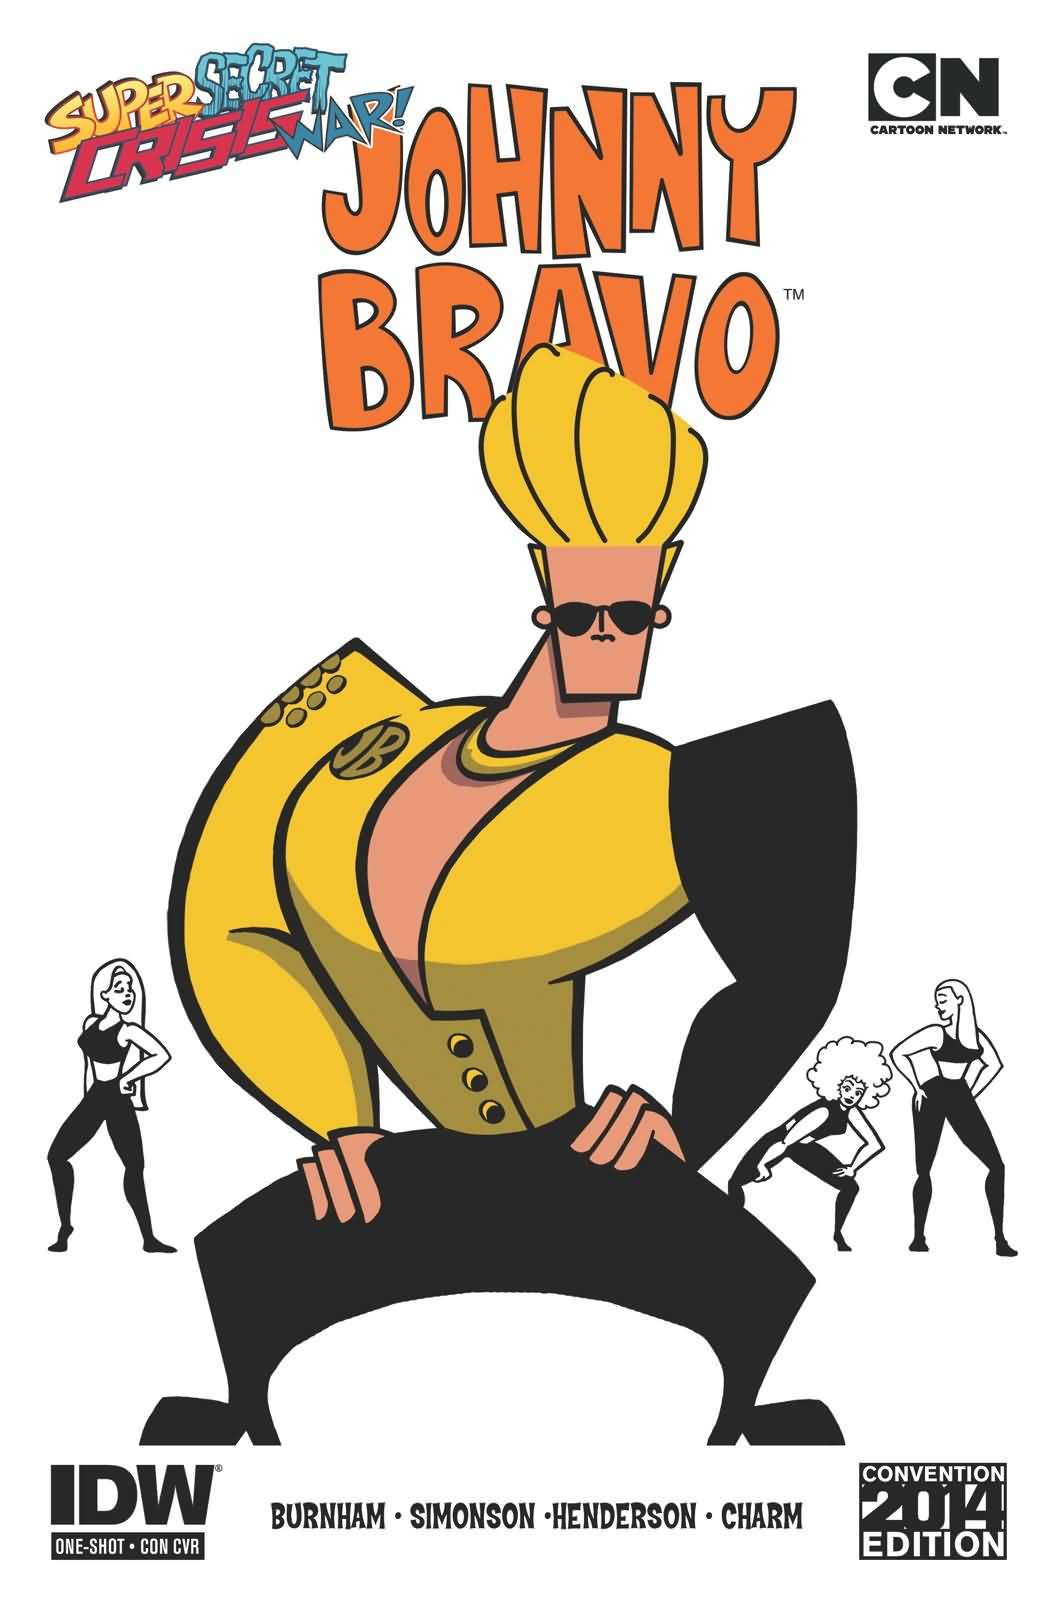 Cool Johnny Bravo Costume